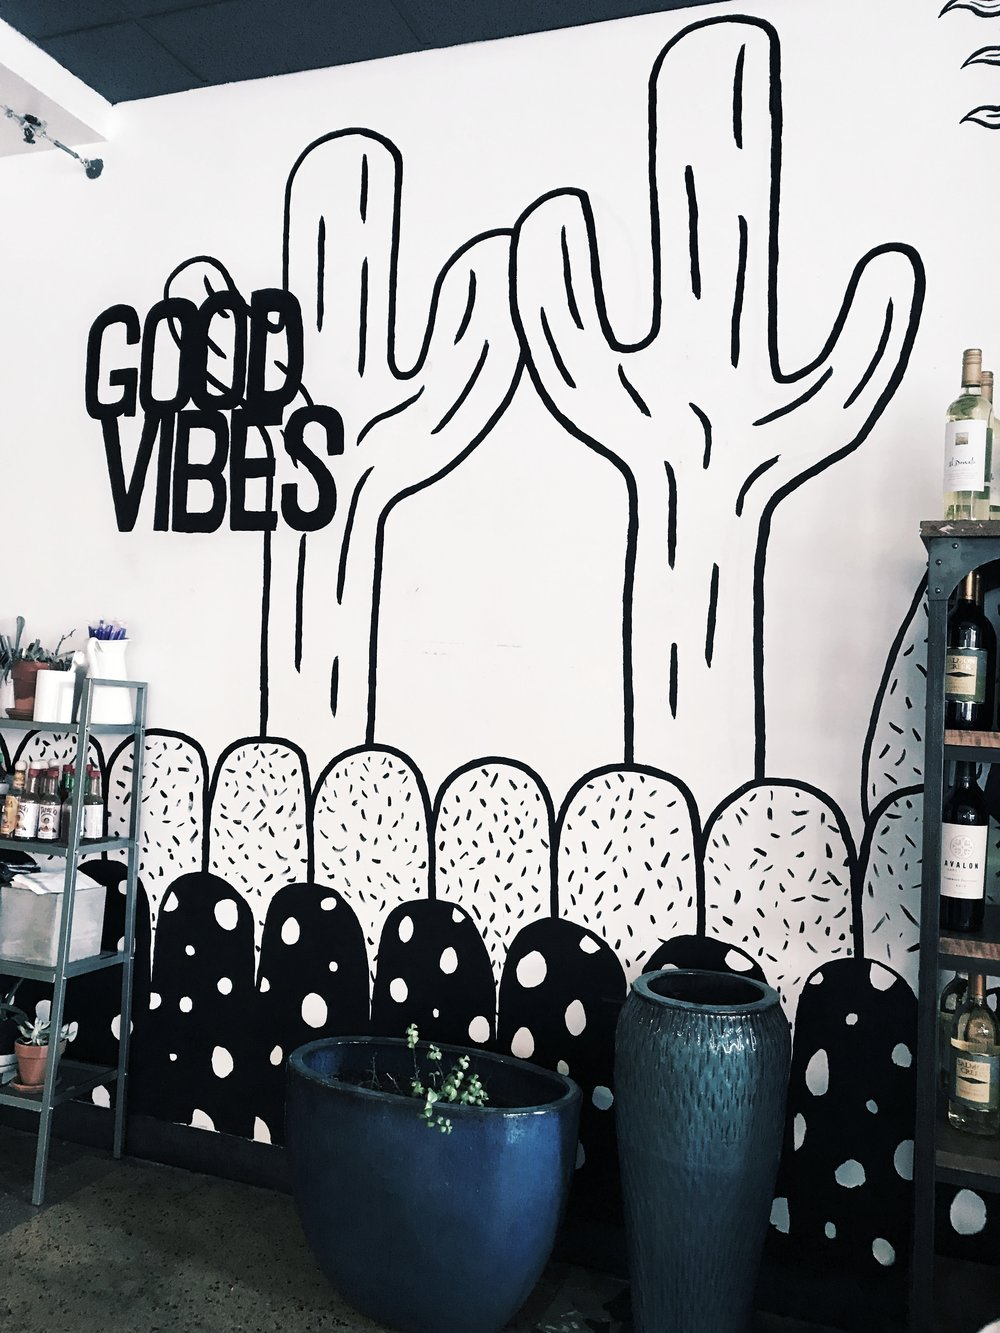 Kaleidescope Juicery - This cute fast-cash place has so many fresh options, and was voted as having the best açai bowl in Phoenix!Vegan, vegetarian, paleo, GF, etc.options are all available to fit your dietary needs!Location: Downtown